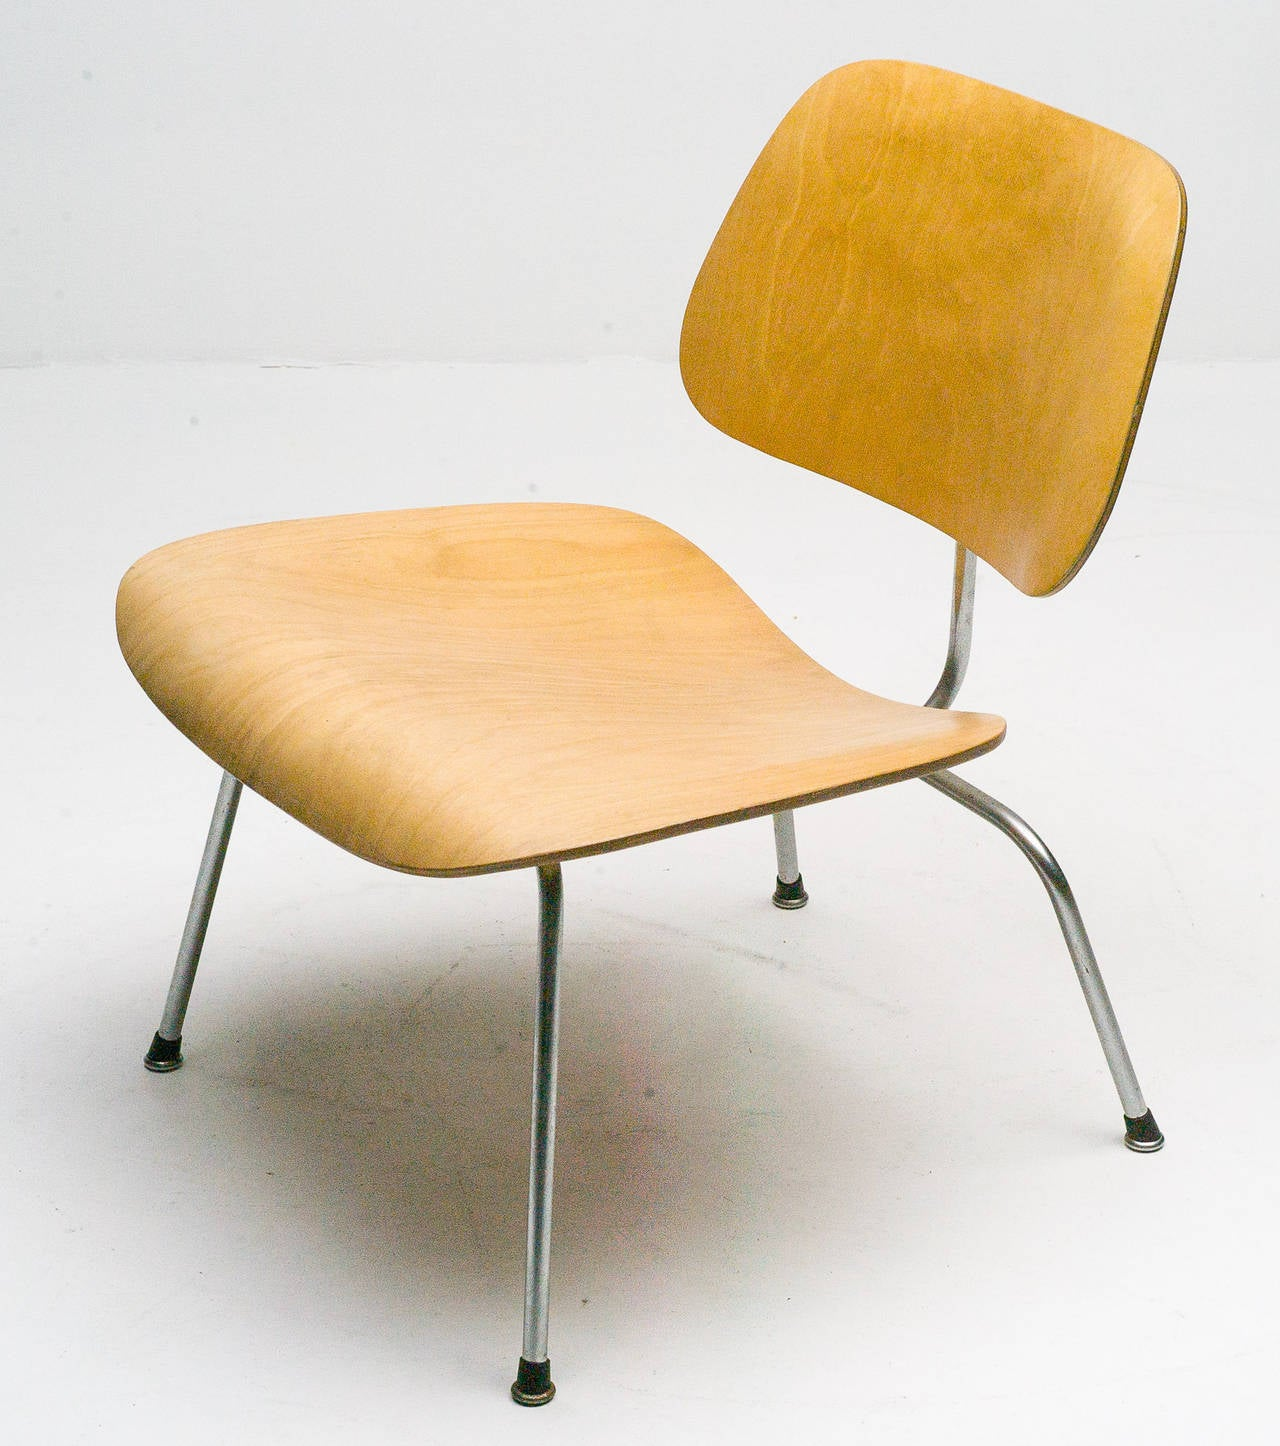 1949 original charles eames lcm in birch chair for sale at